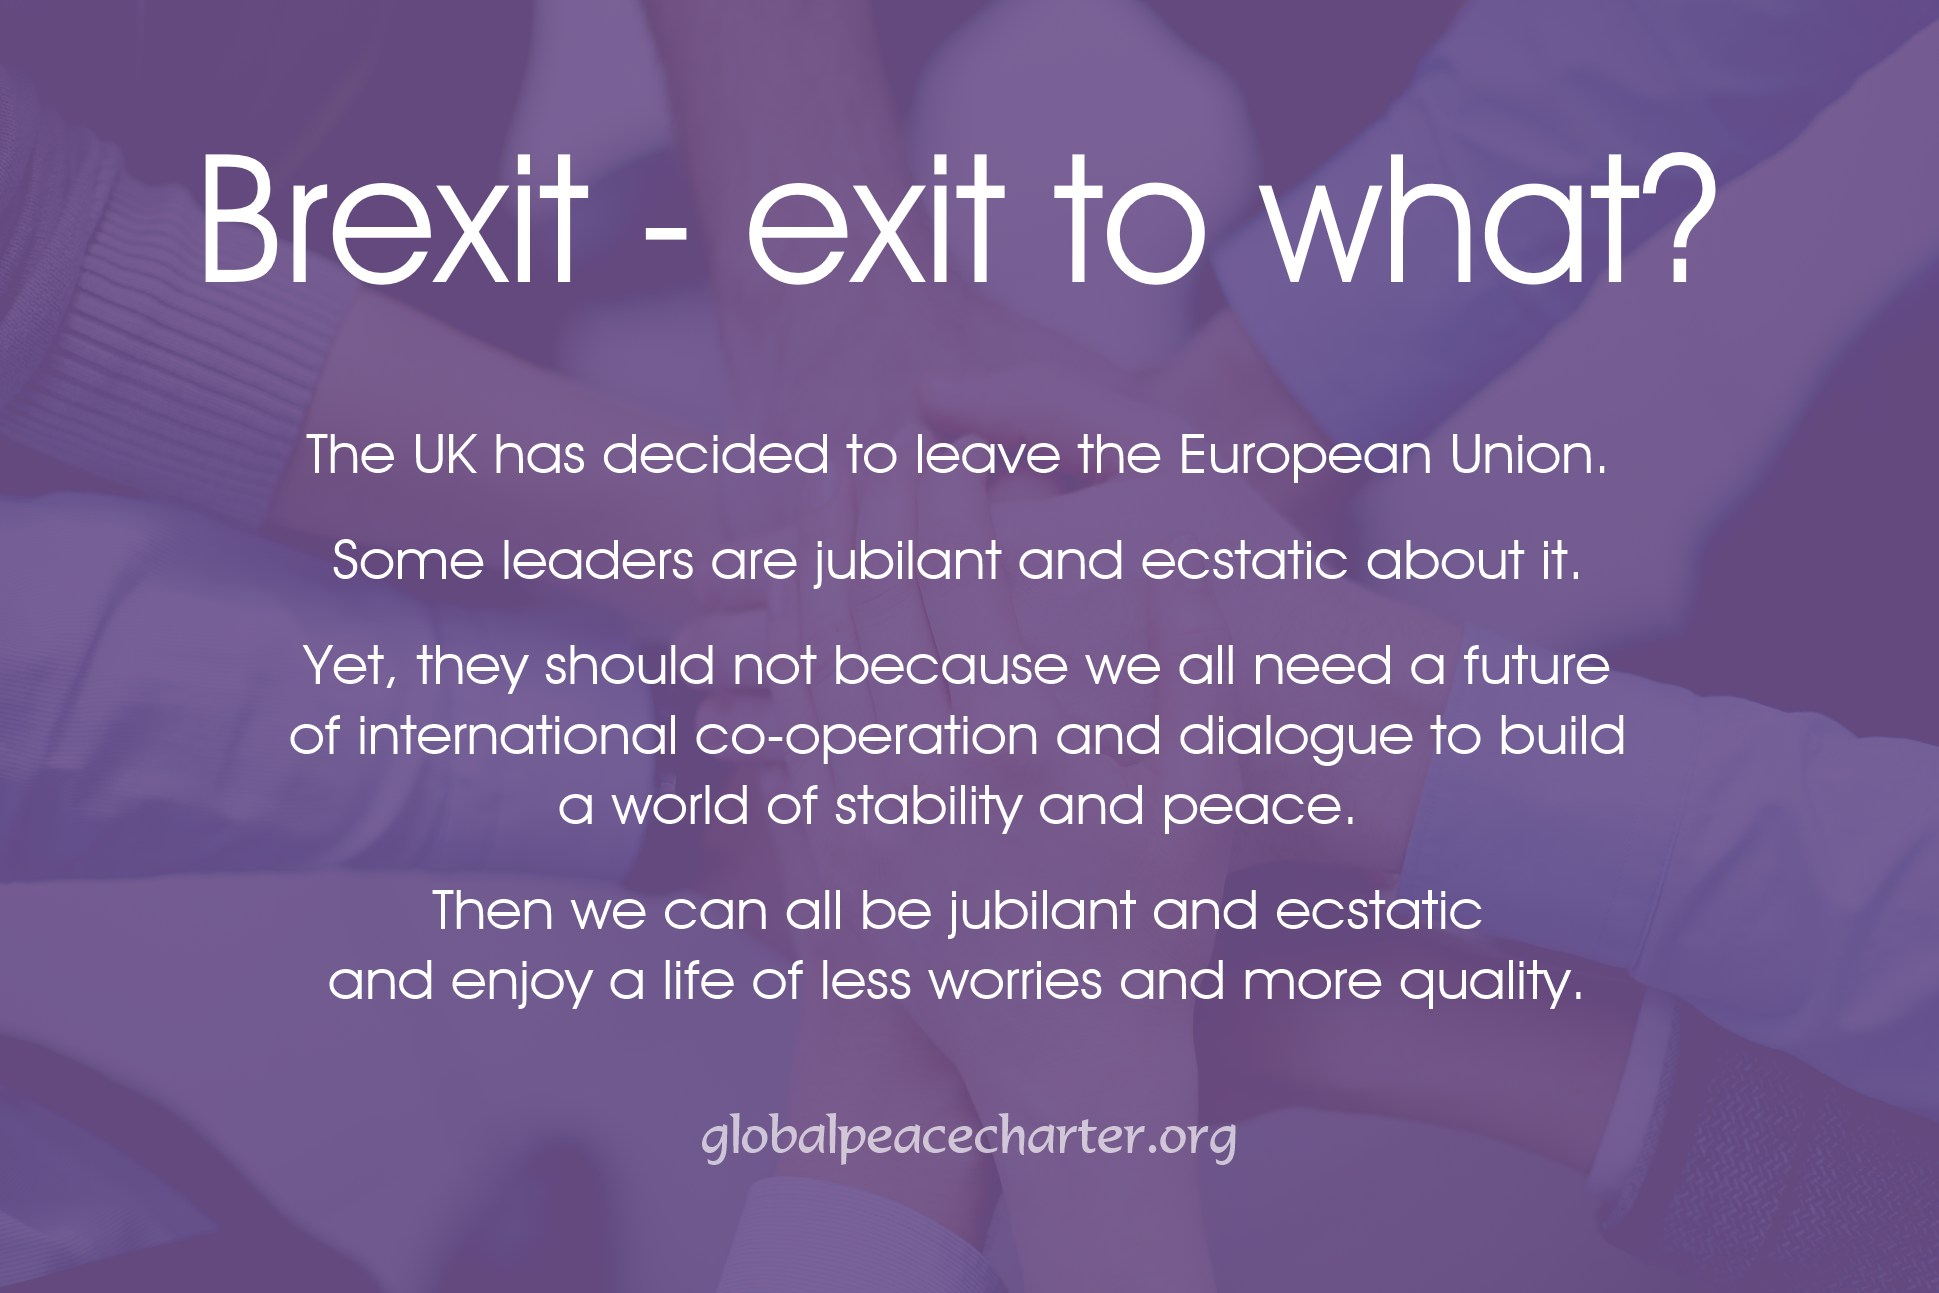 Brexit - exit to what?